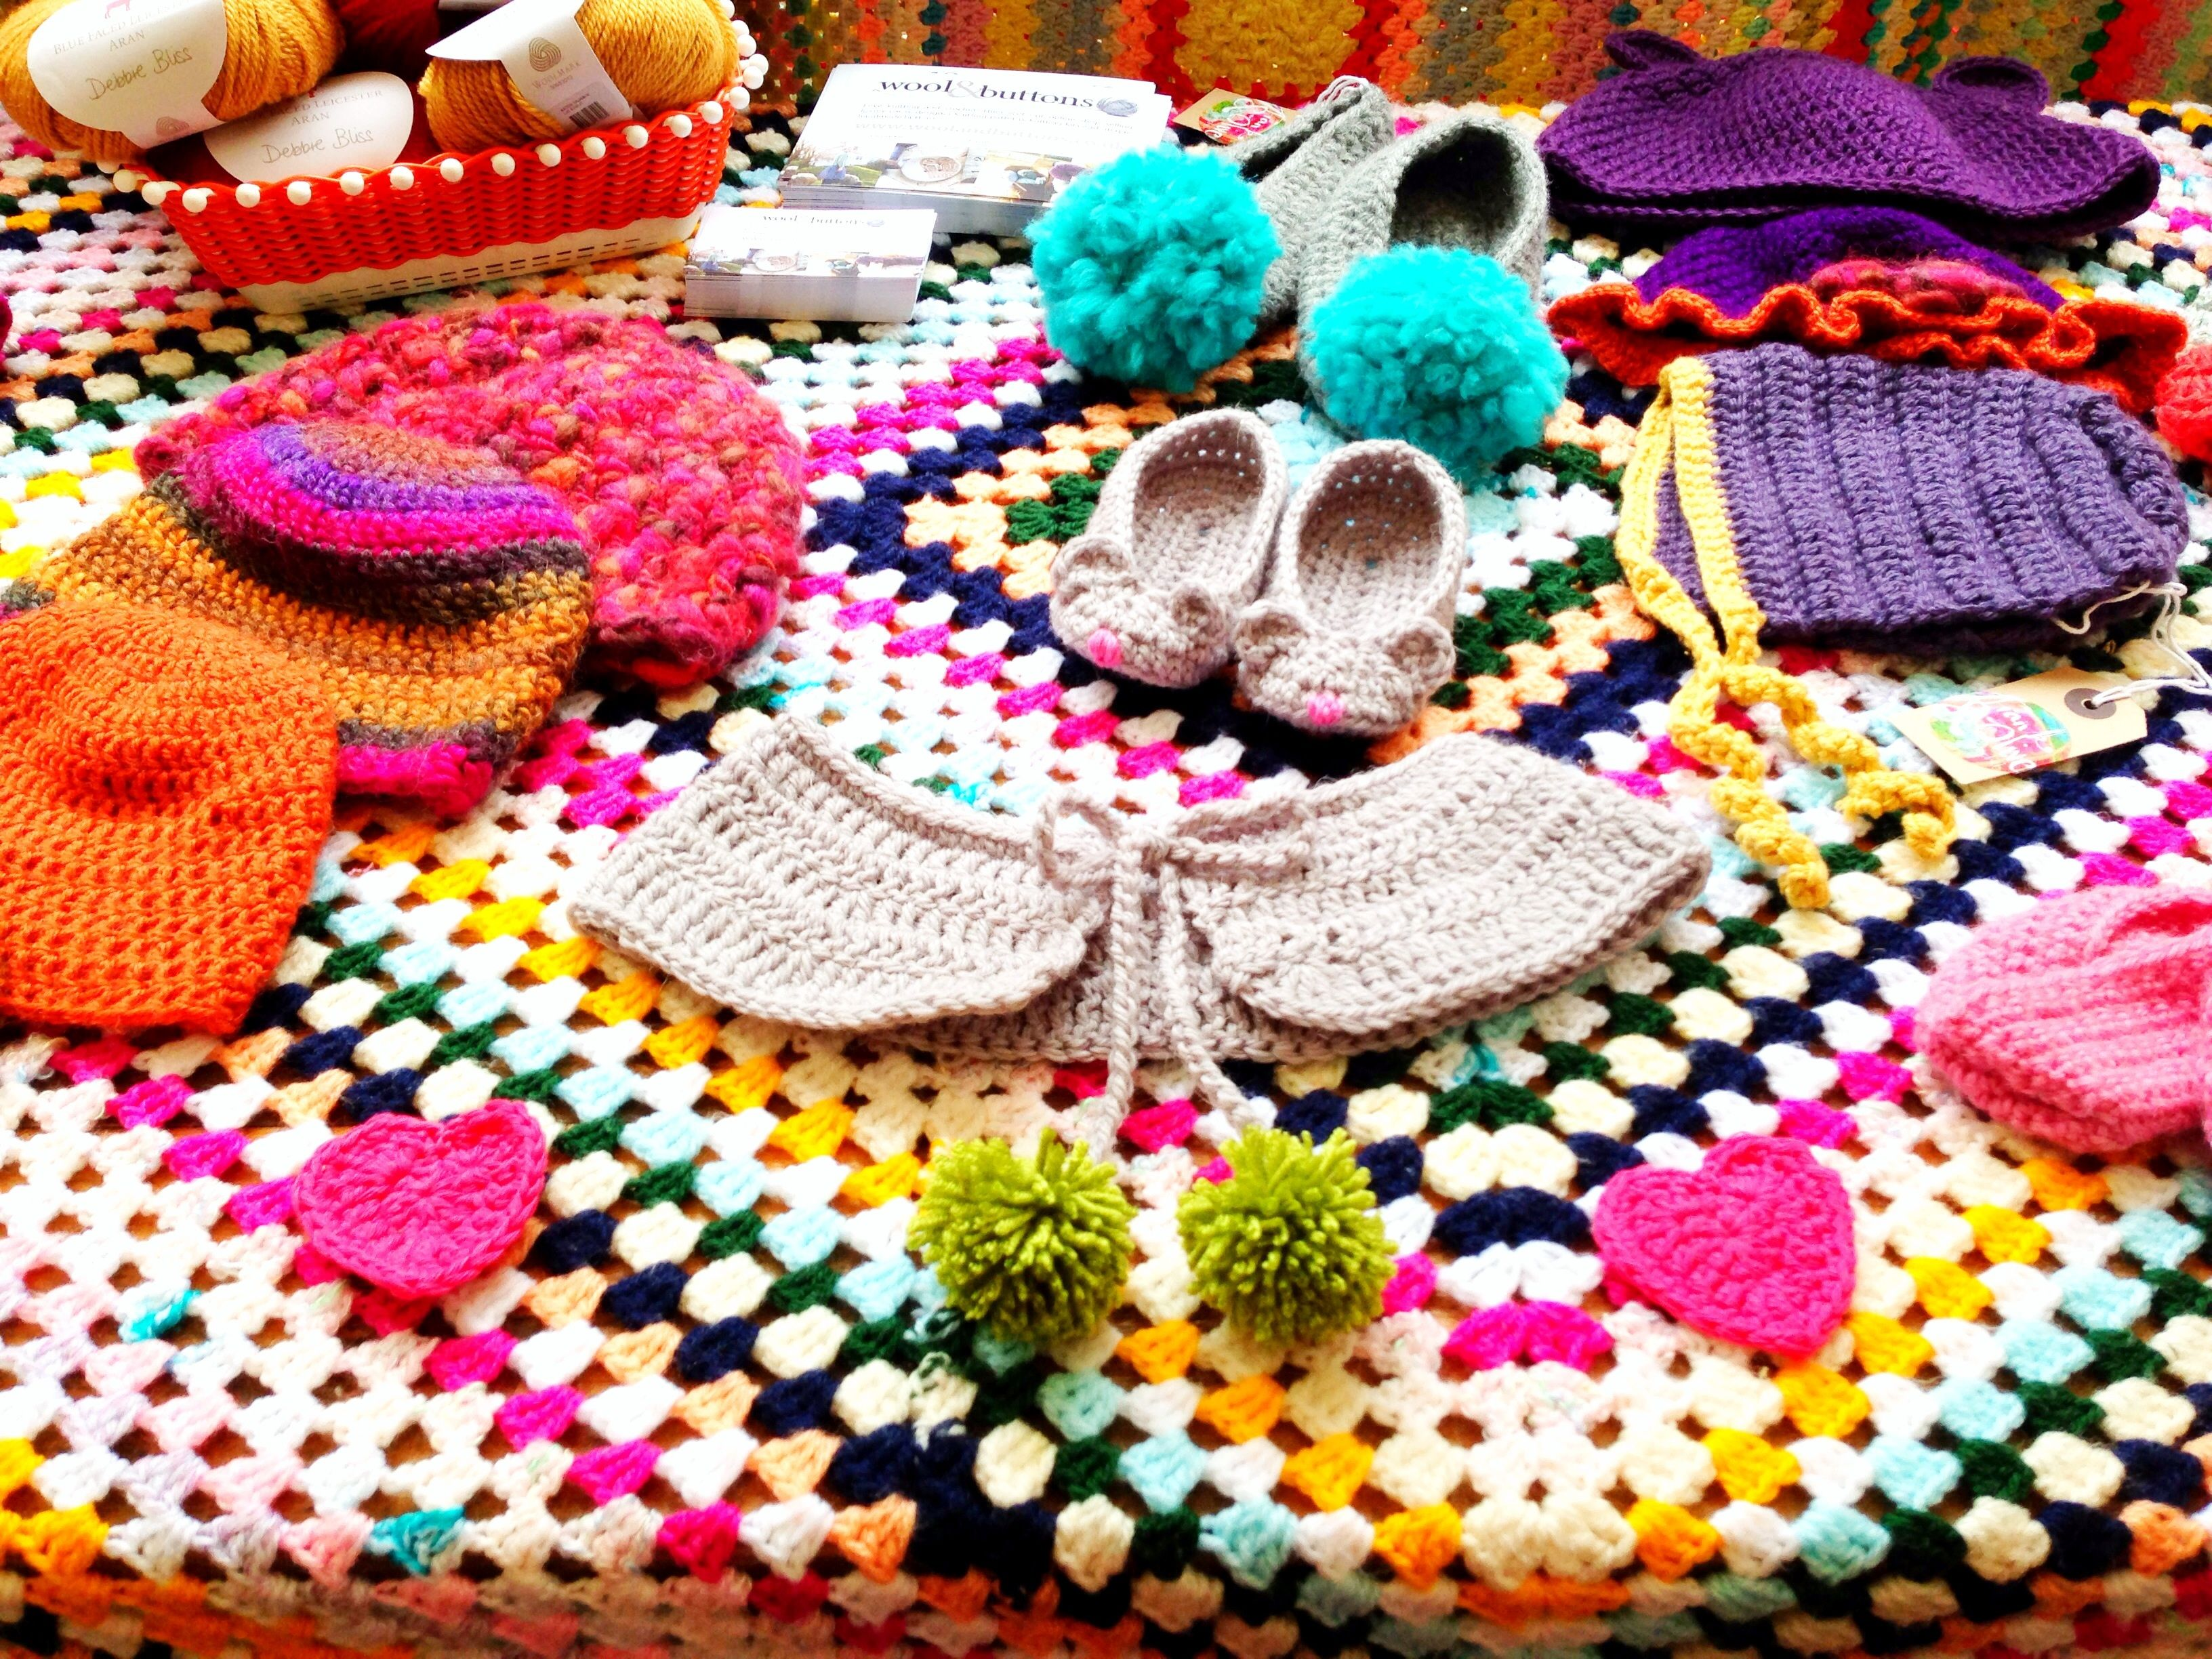 Crochet by Frank & Olive at the Folksy Summer School. Photo by Ruby McGrath http://folksy.com/shops/FrankandOlive